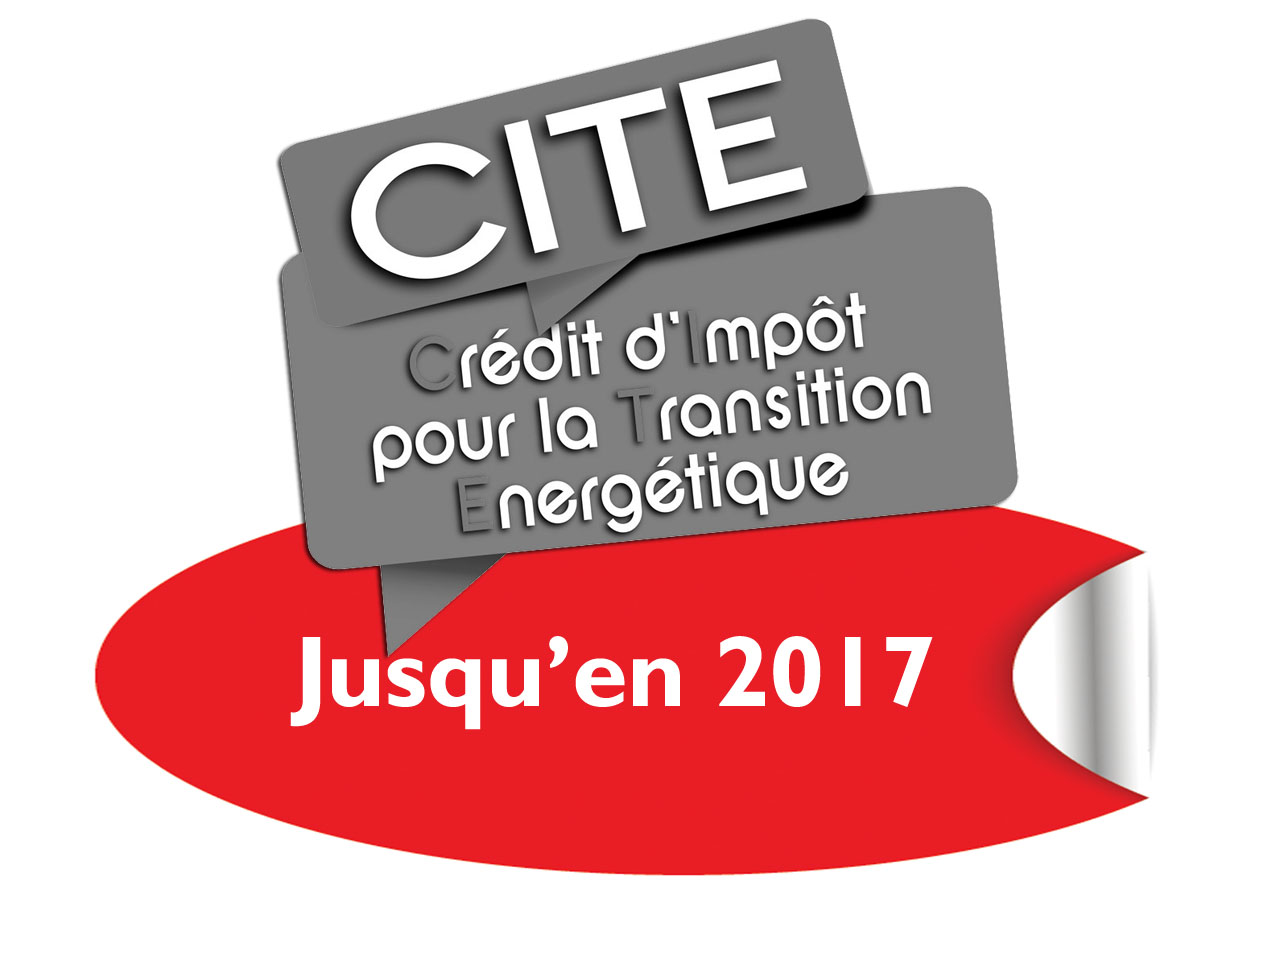 Le cr dit d 39 imp t transition nerg tique reconduit en 2017 - Credit impot volet roulant 2017 ...